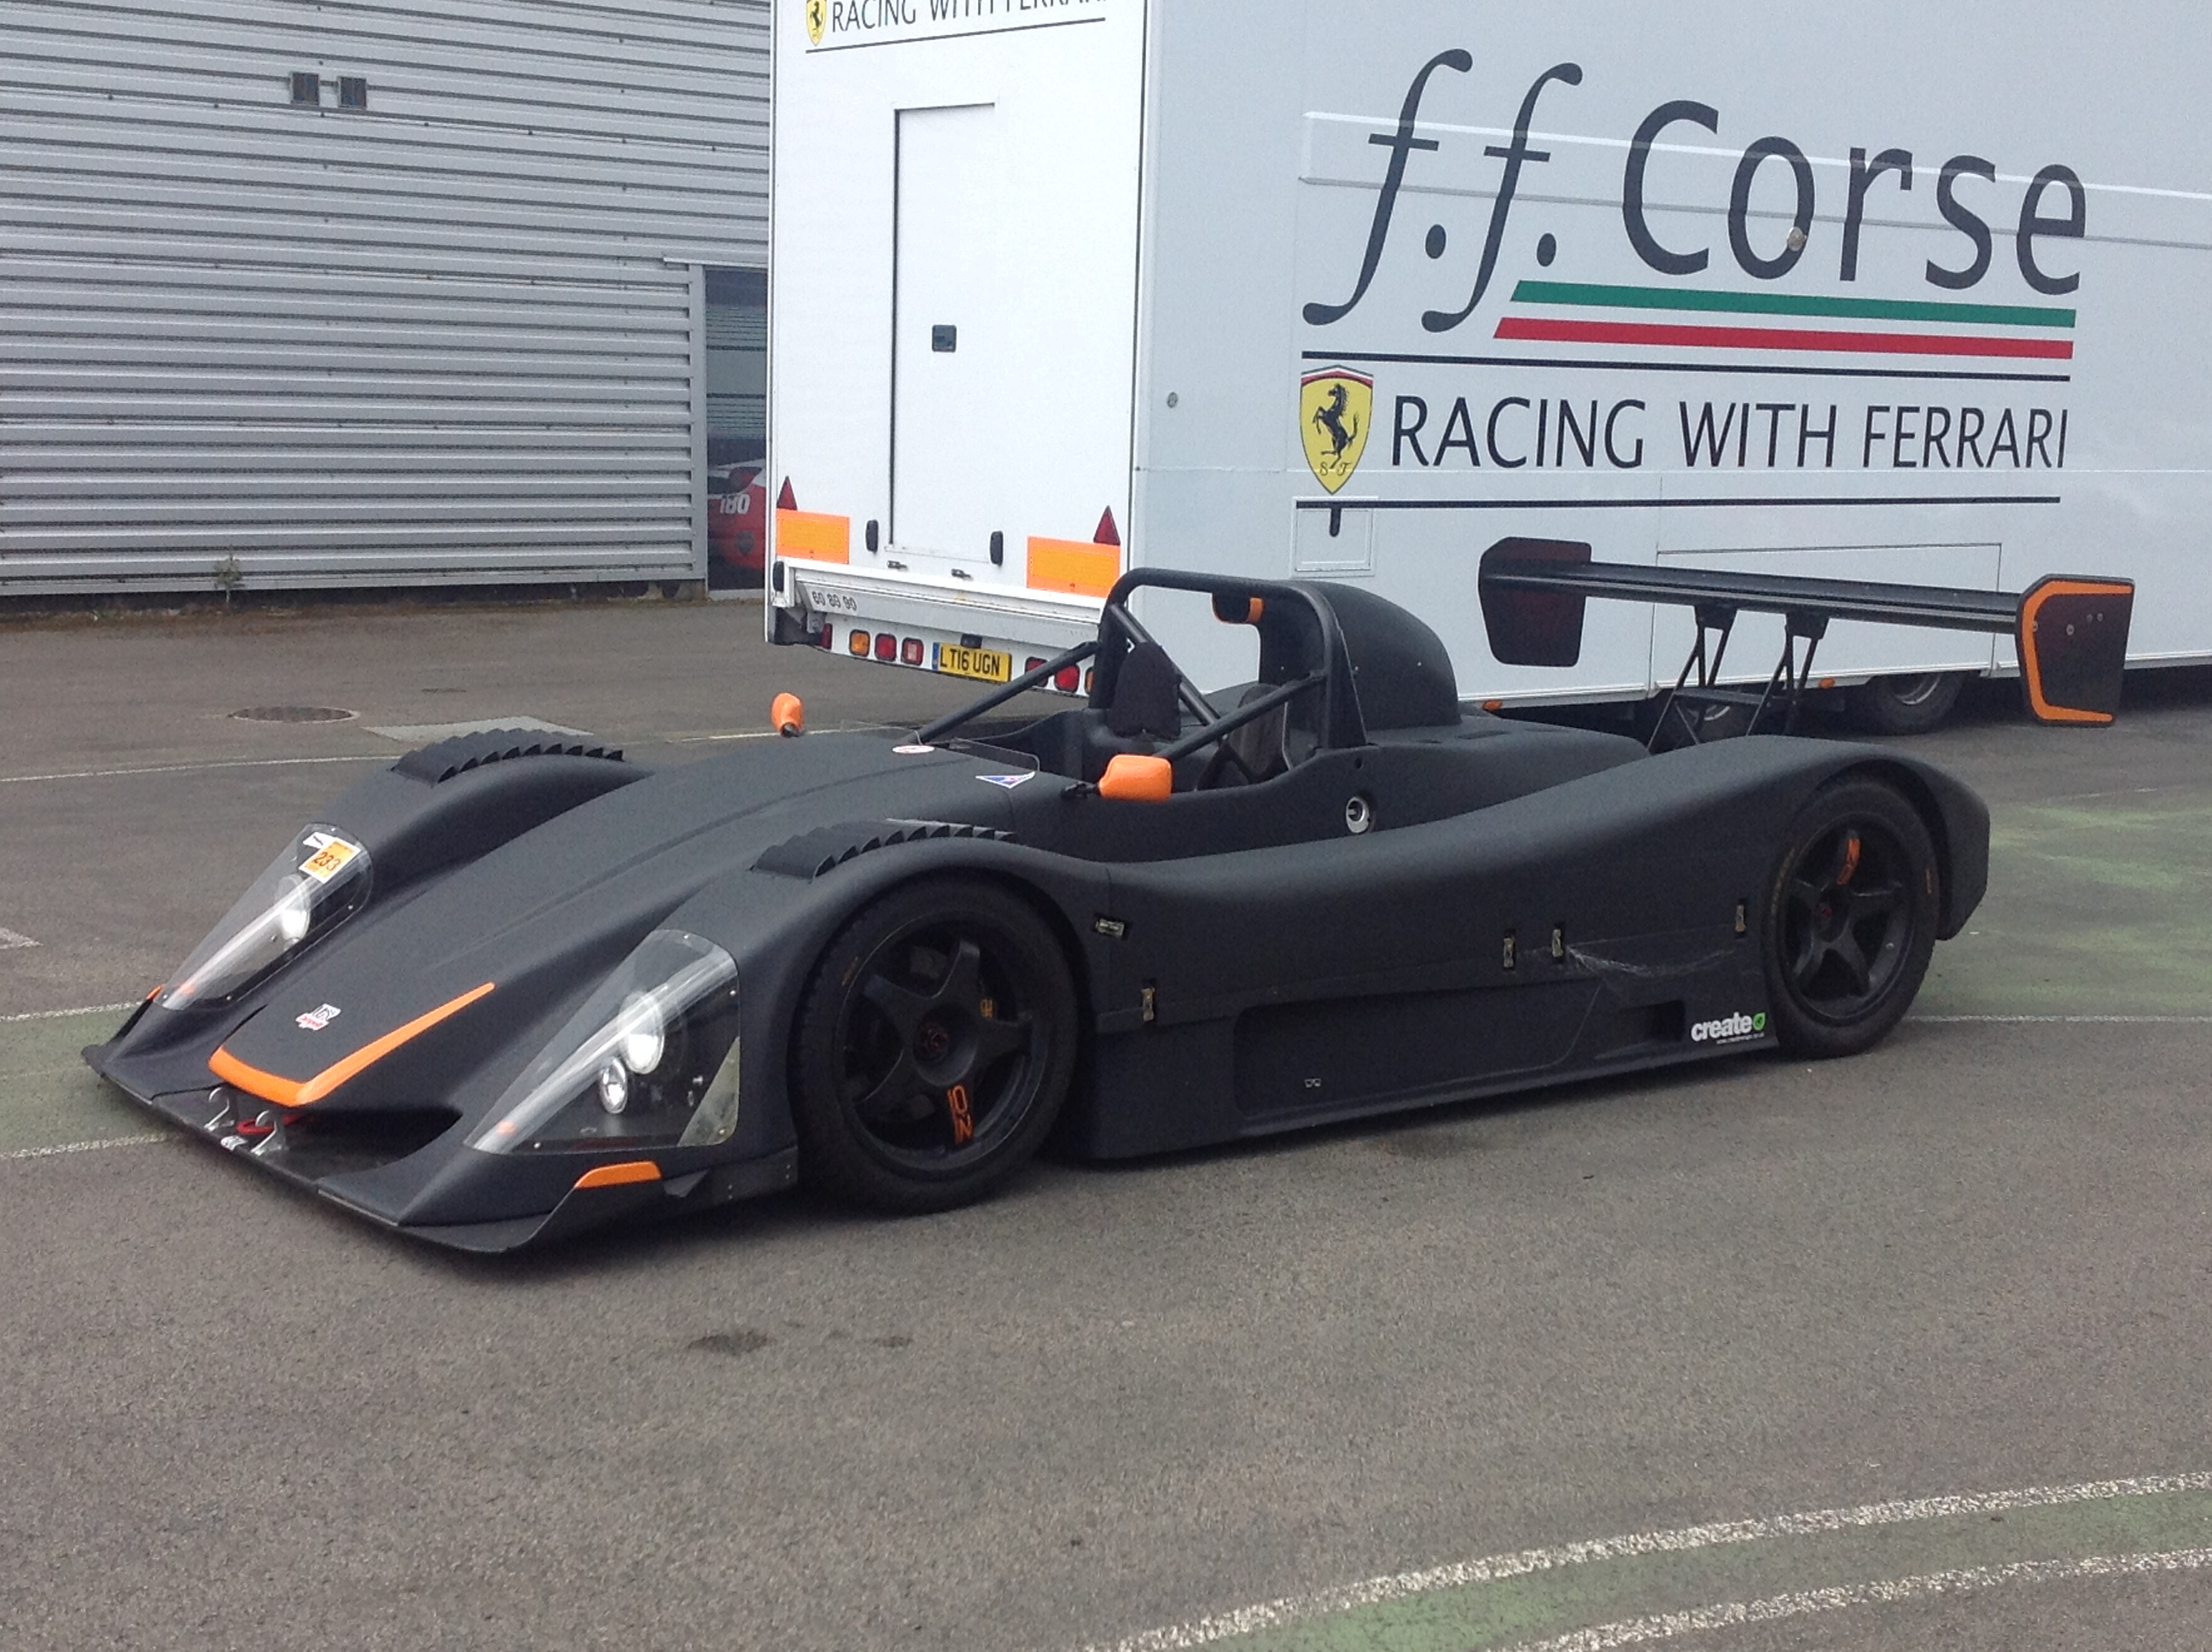 2001 tampolli sr2 lmp675 with nissan v6 offers race cars for sale at raced rallied. Black Bedroom Furniture Sets. Home Design Ideas